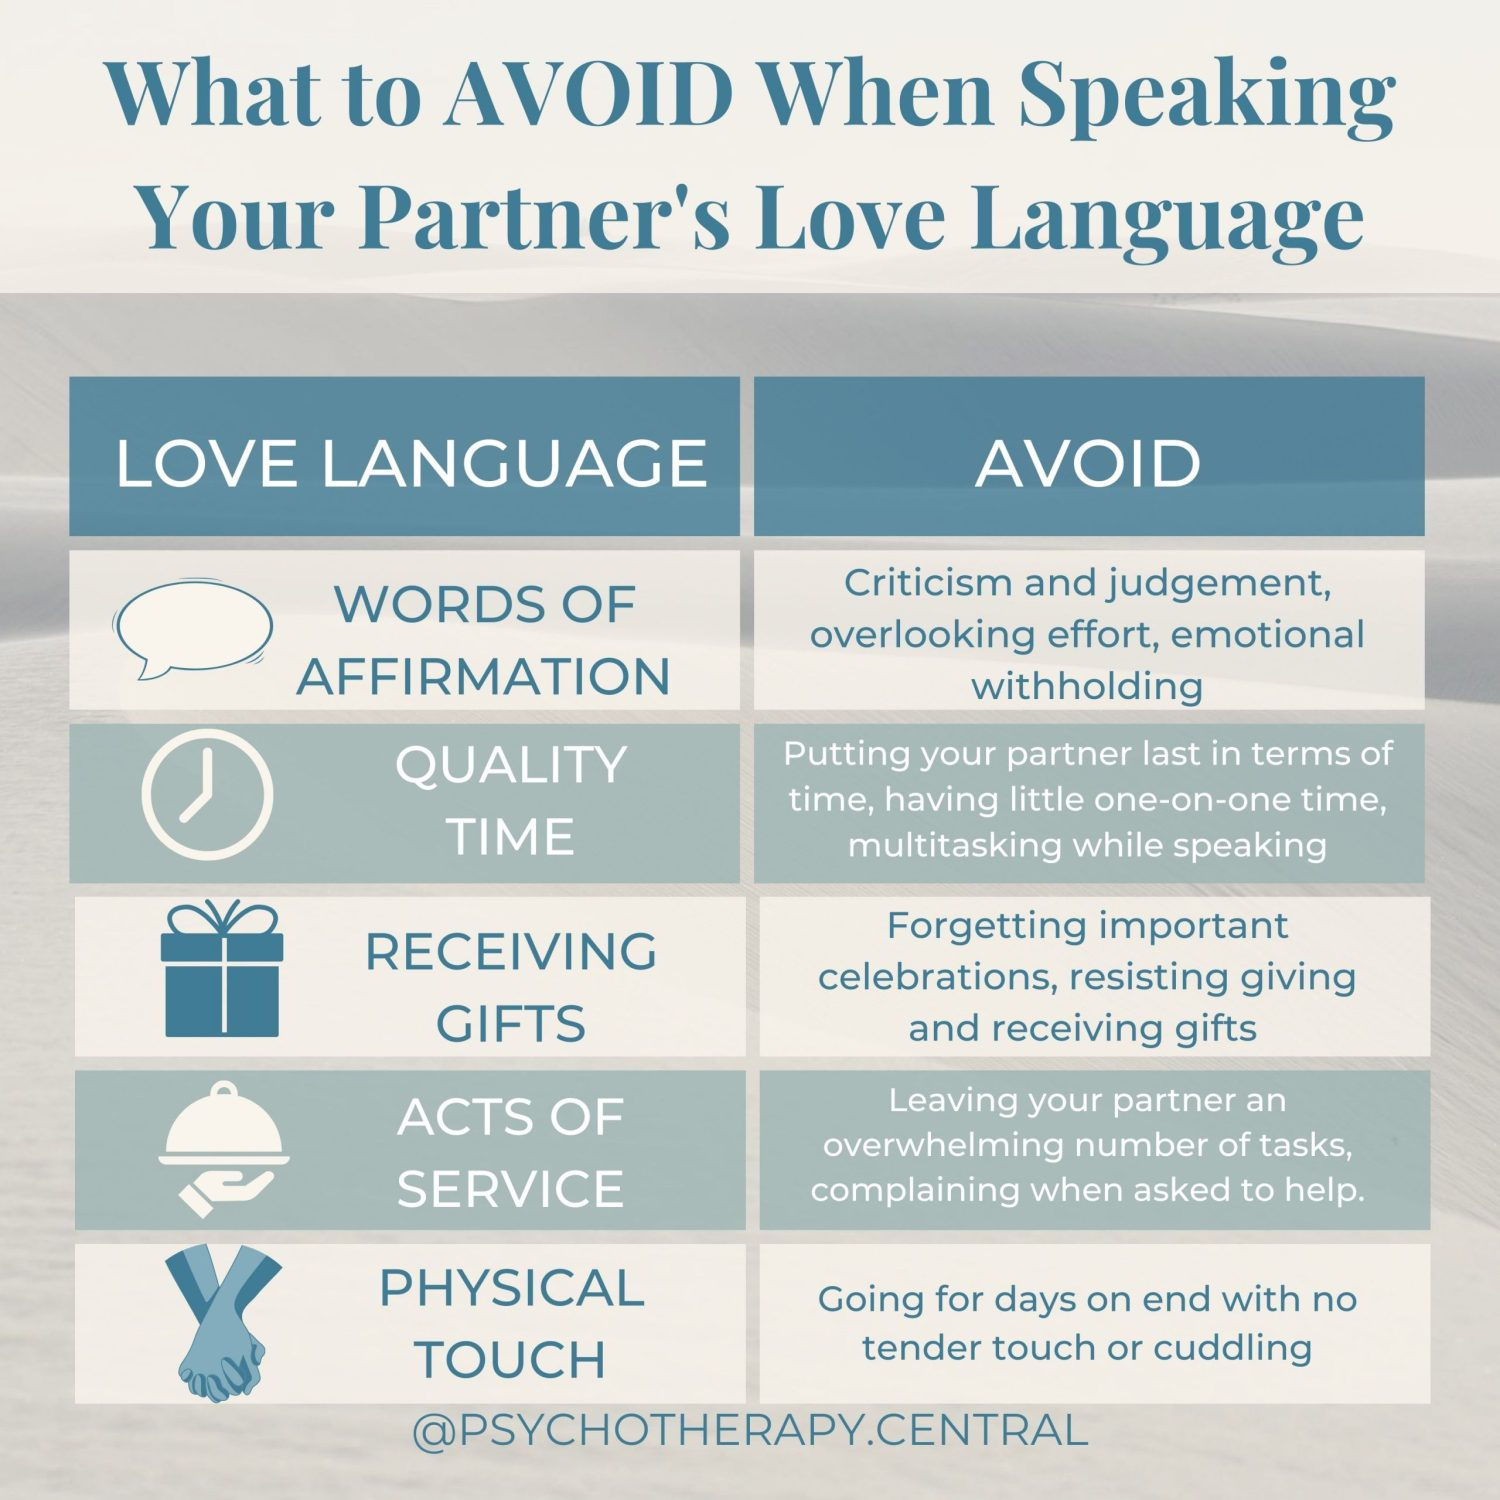 What to AVOID when Speaking Your Partner's Love Language